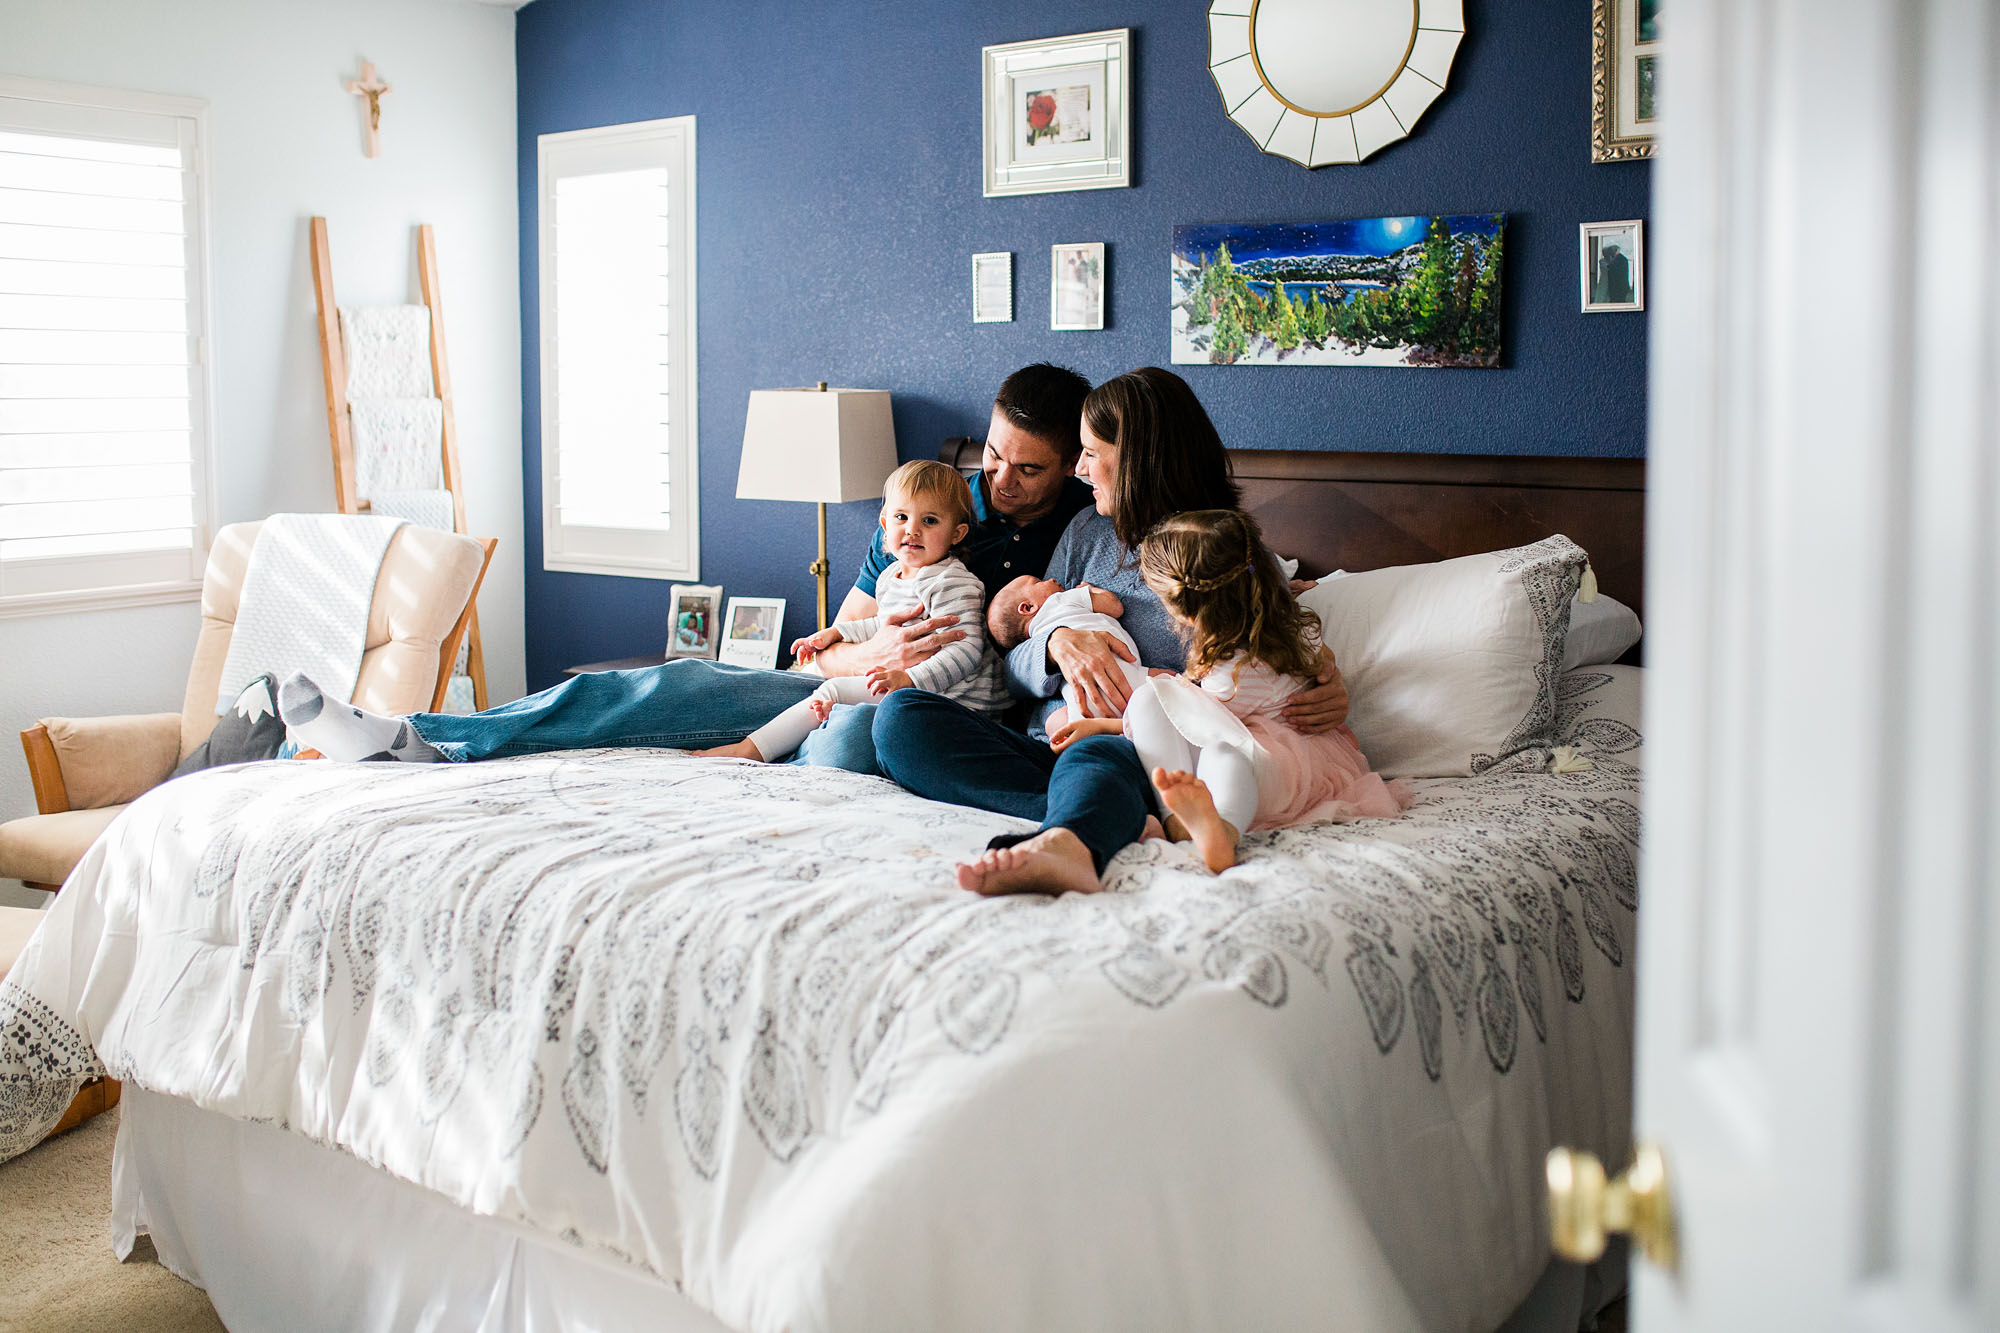 A new family of five sits on the bed admiring their newborn baby during a lifestyle photo session with Amy Wright, a photographer based out of Roseville, California.